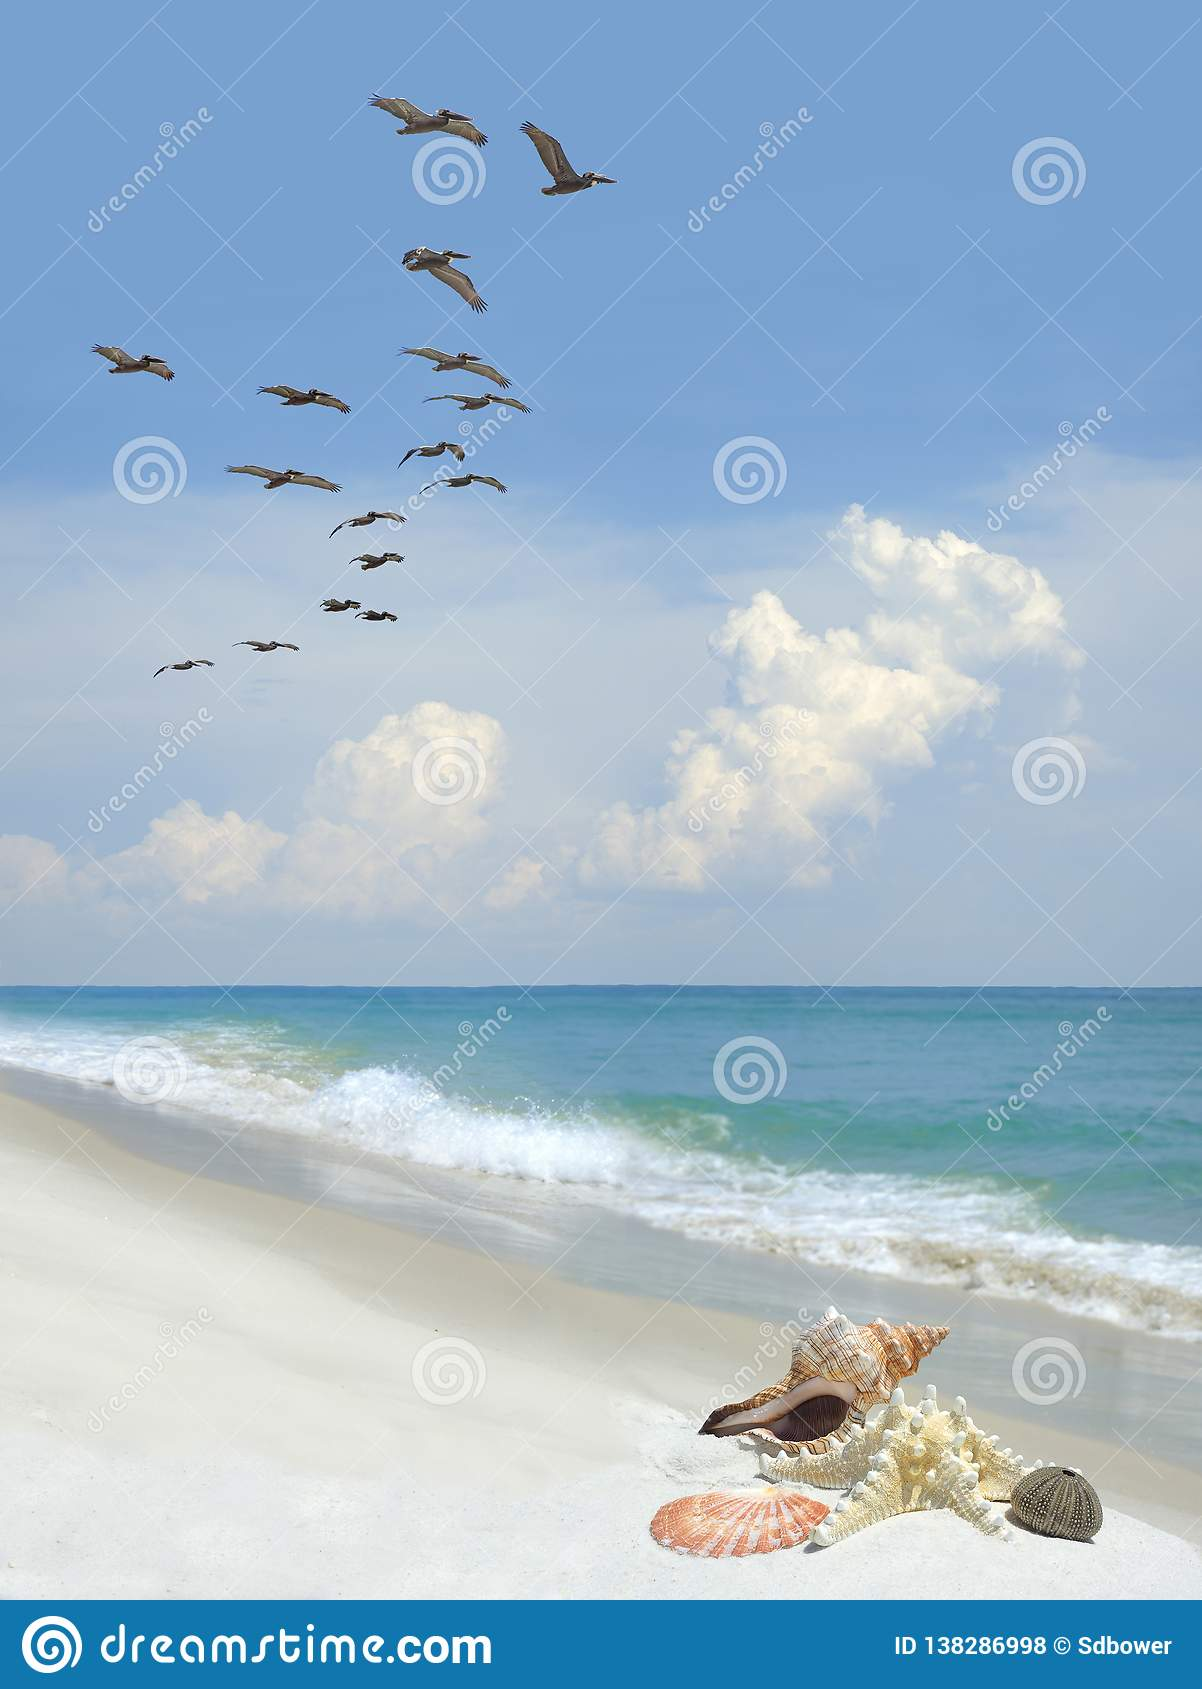 Beautiful Sea Shells on a White Sand Beach as a Flock of Pelicans Fly By